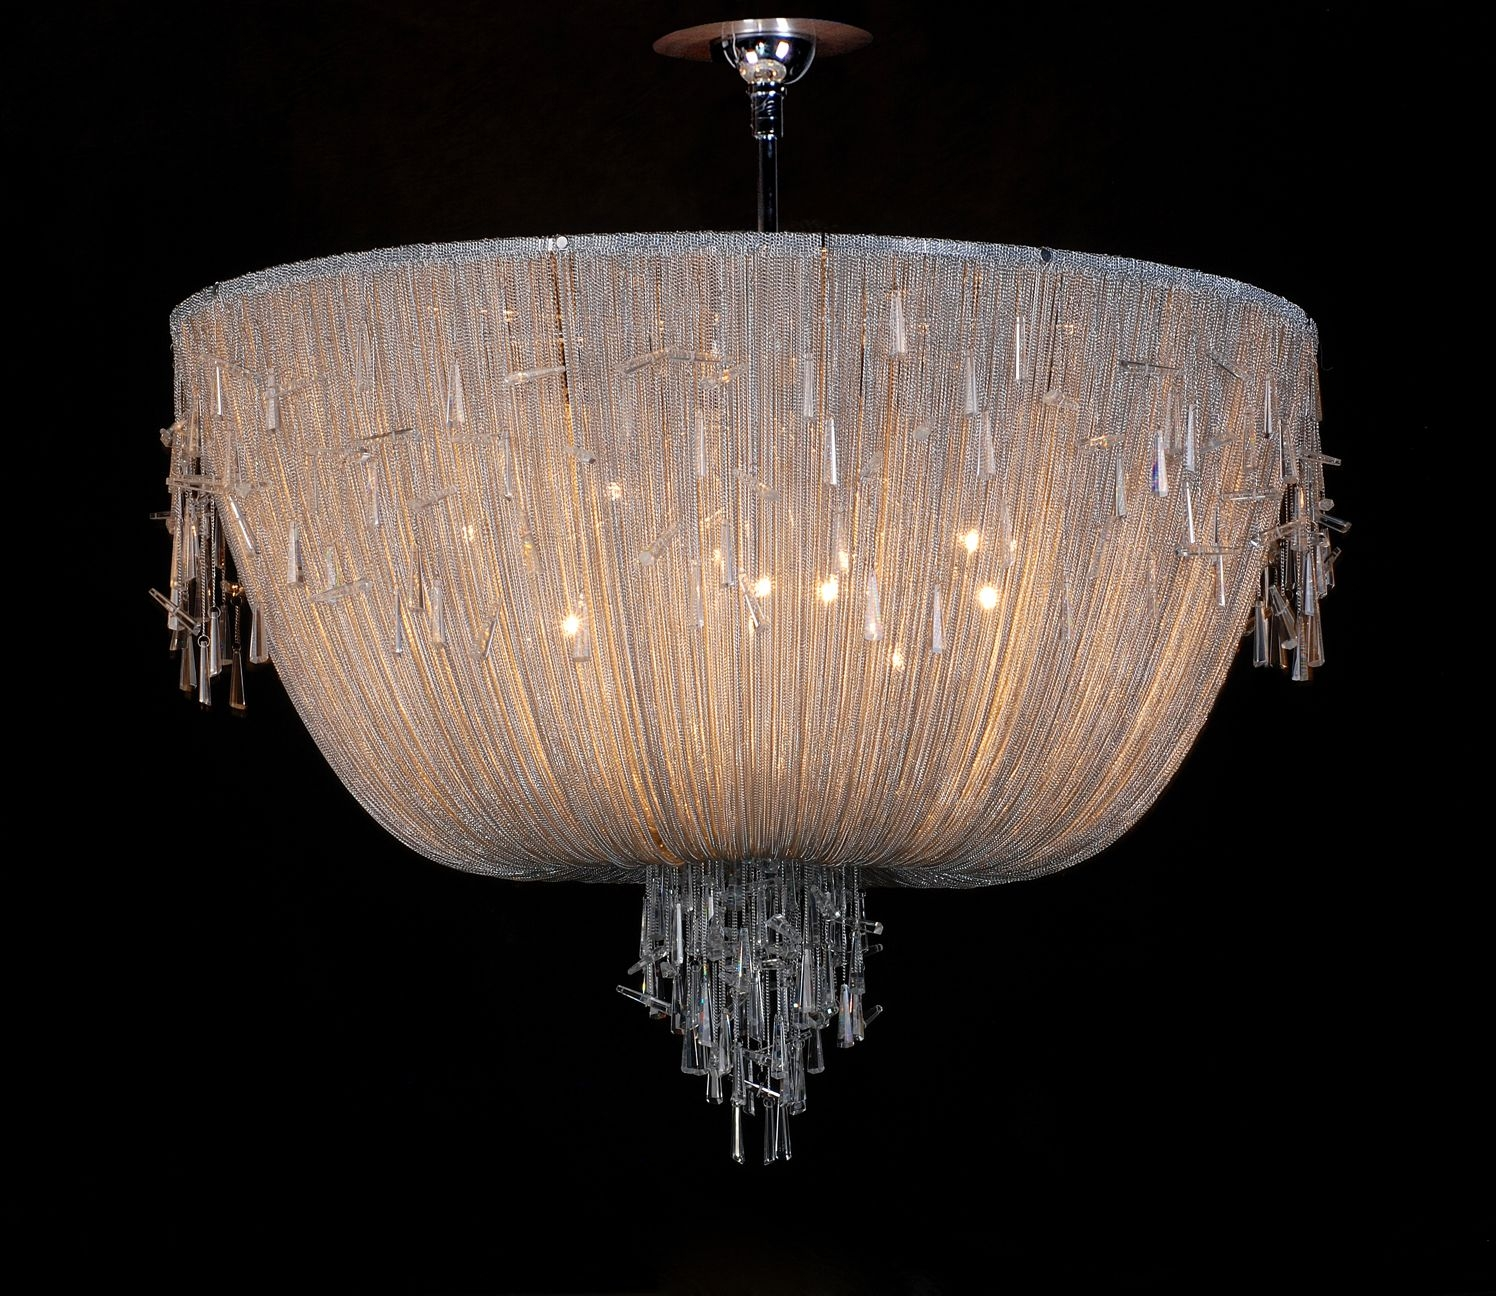 Home Bespoke Italian Chandeliers Hand Blown Glass Lighting For Italian Chandeliers Style (Image 3 of 15)